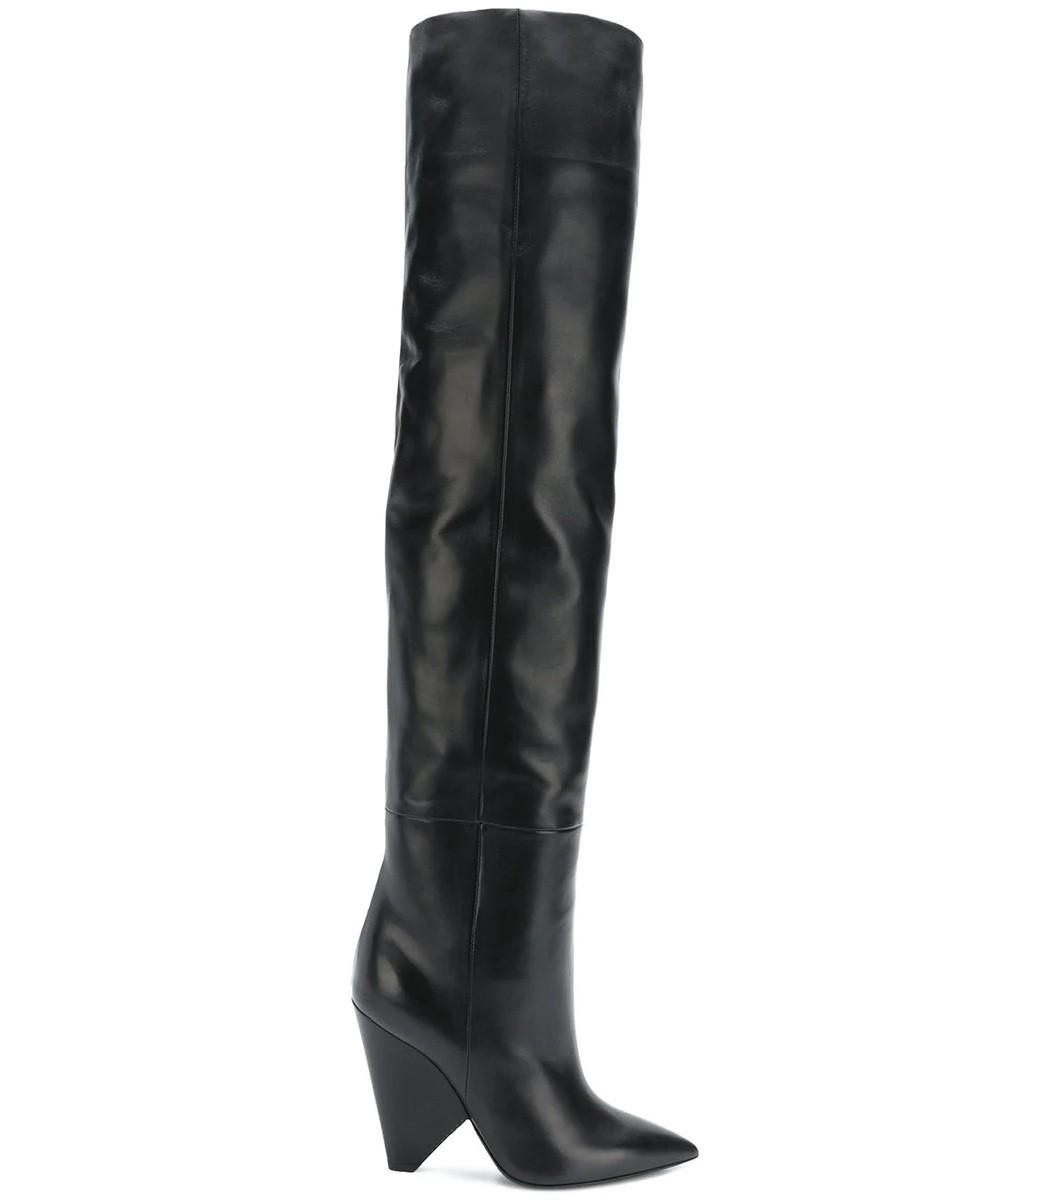 Leather Over Laurent BlackModesens The Knee Niki Boots In Saint n0wPkO